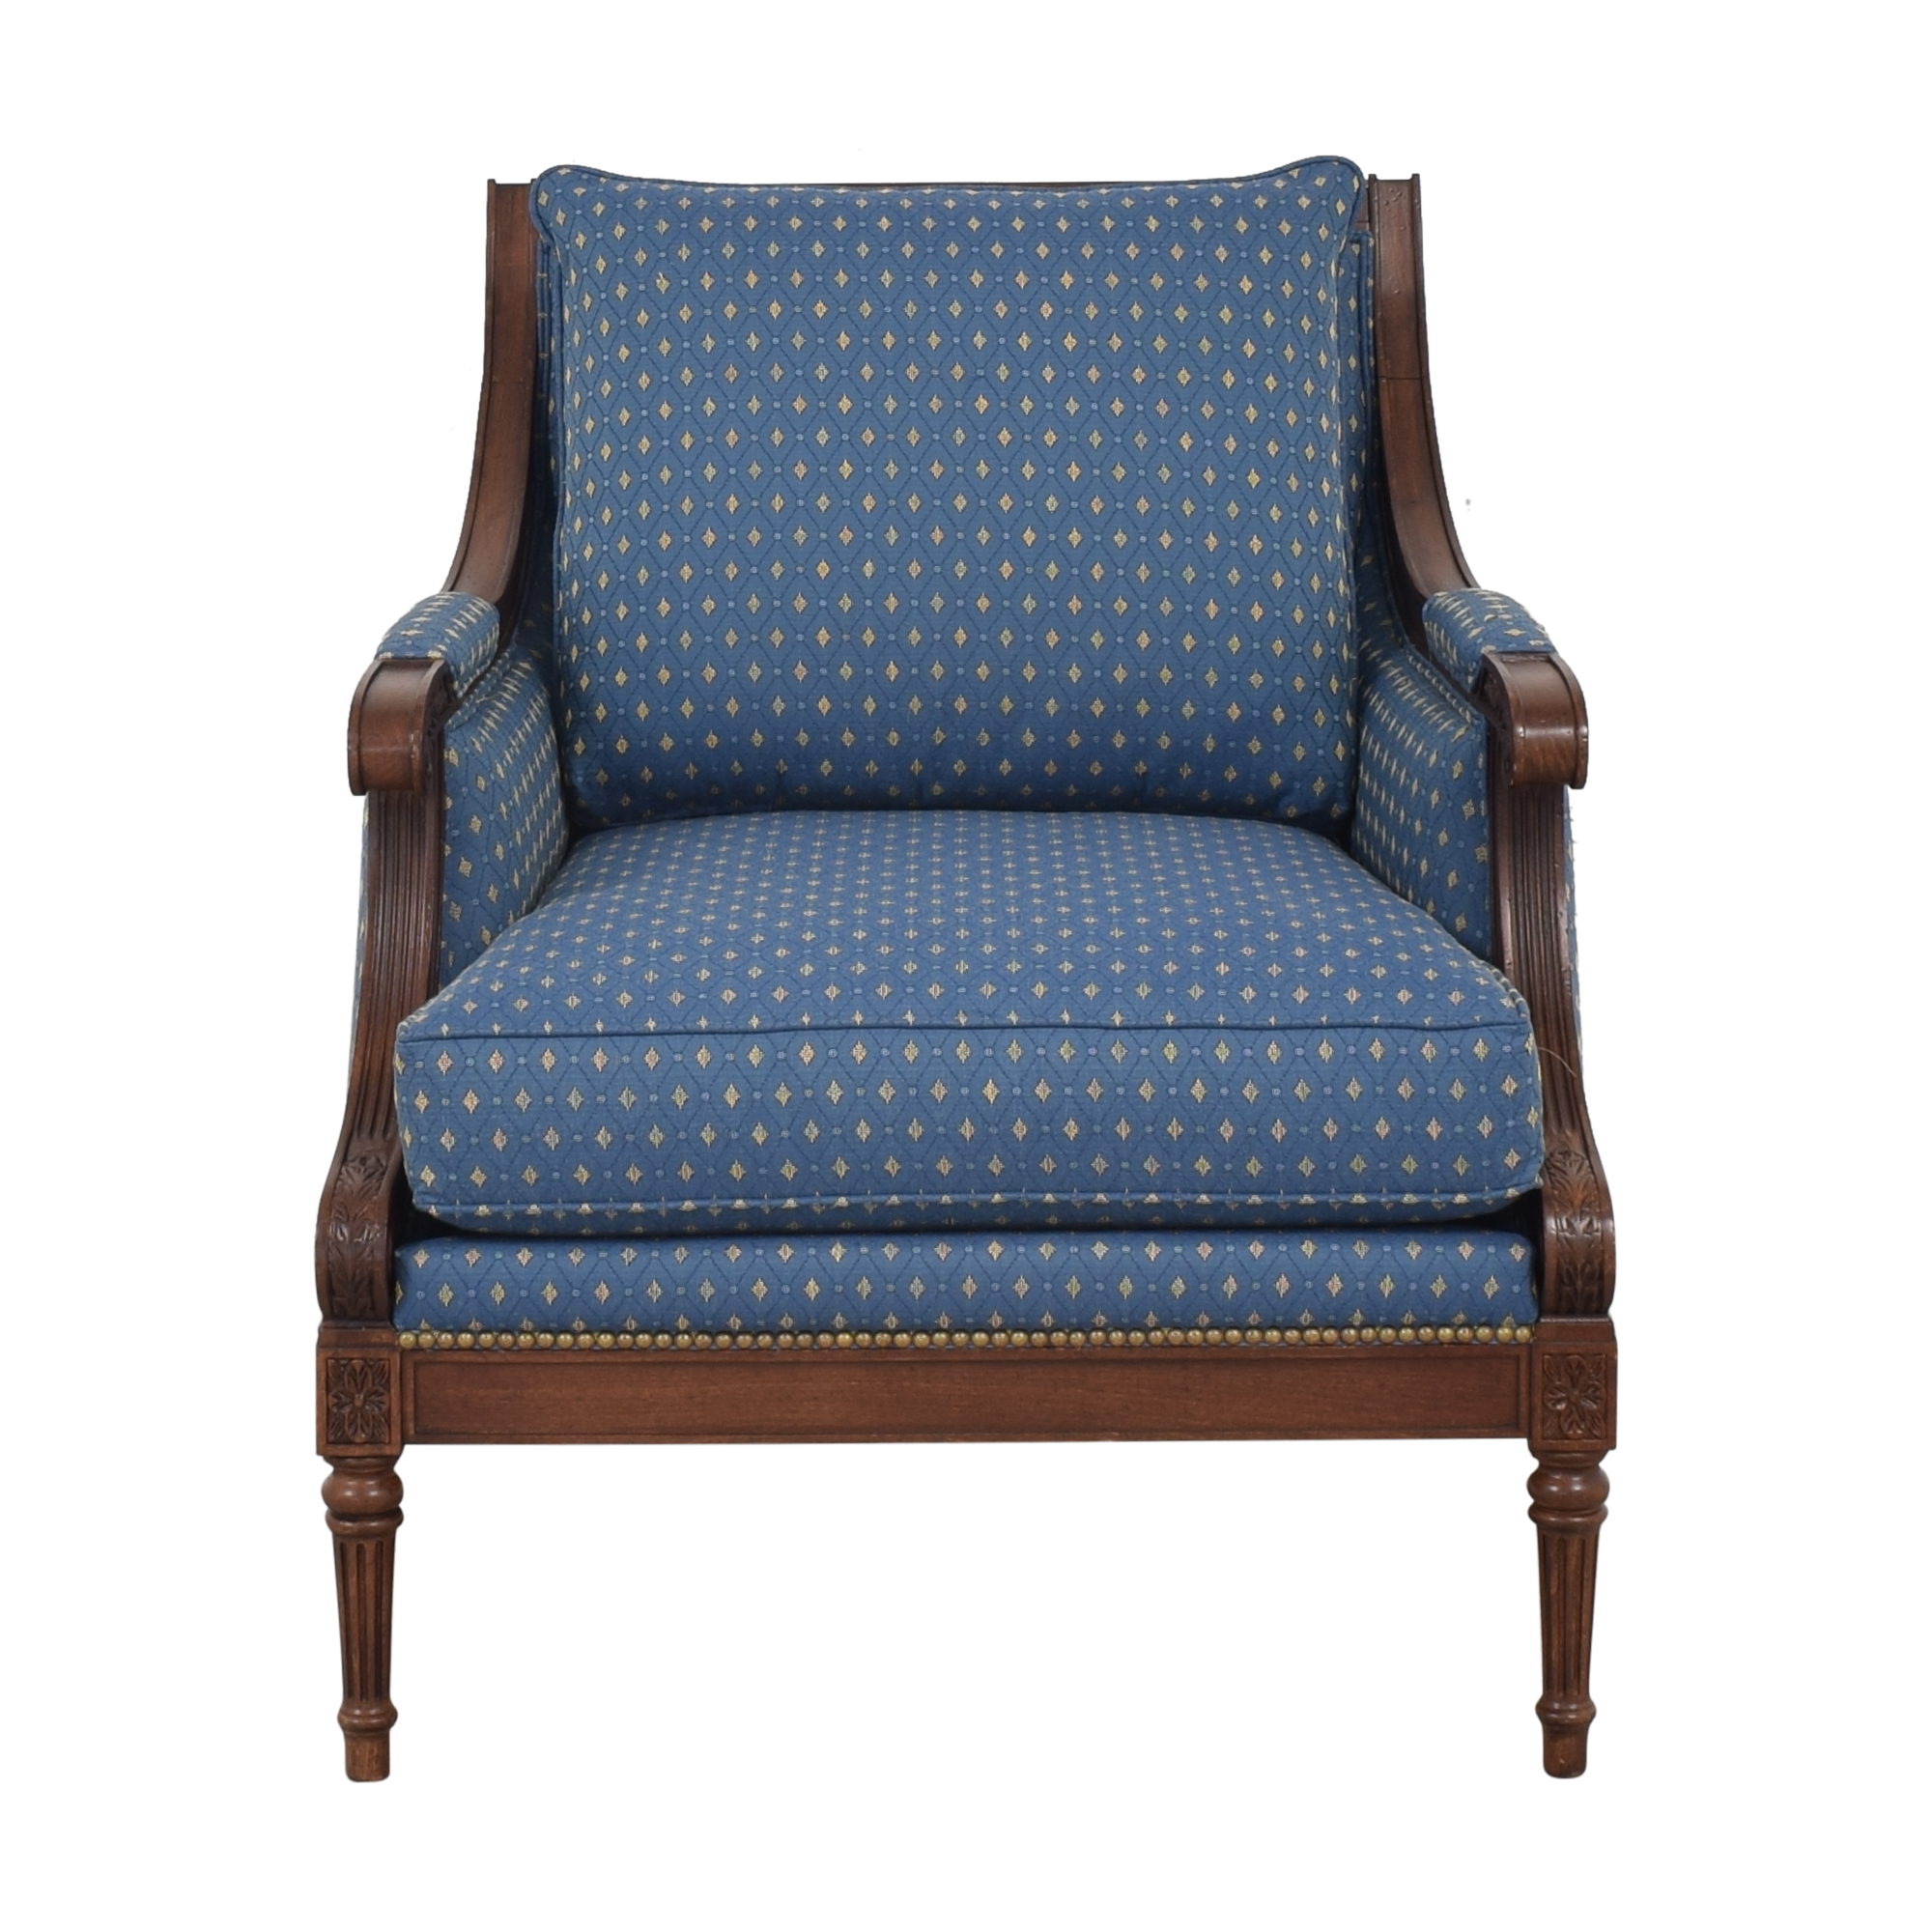 Ethan Allen Ethan Allen Accent Chair price